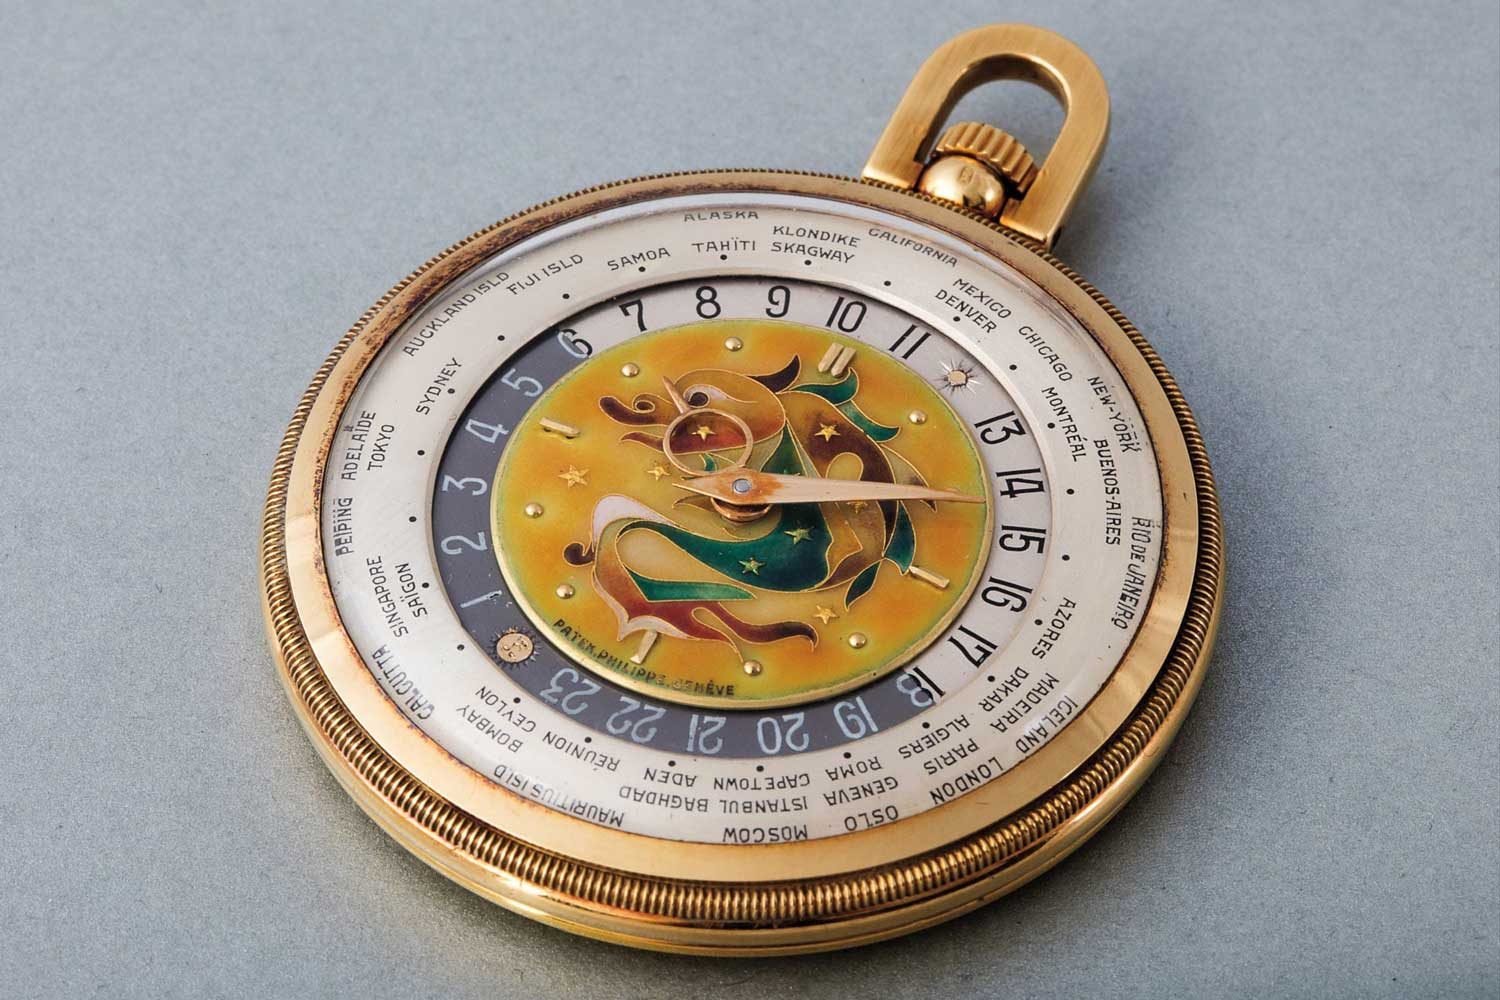 Patek Philippe ref. 605 HU with a cloisonné enamel dial depicting a mythical Dragon (Image: Phillips)